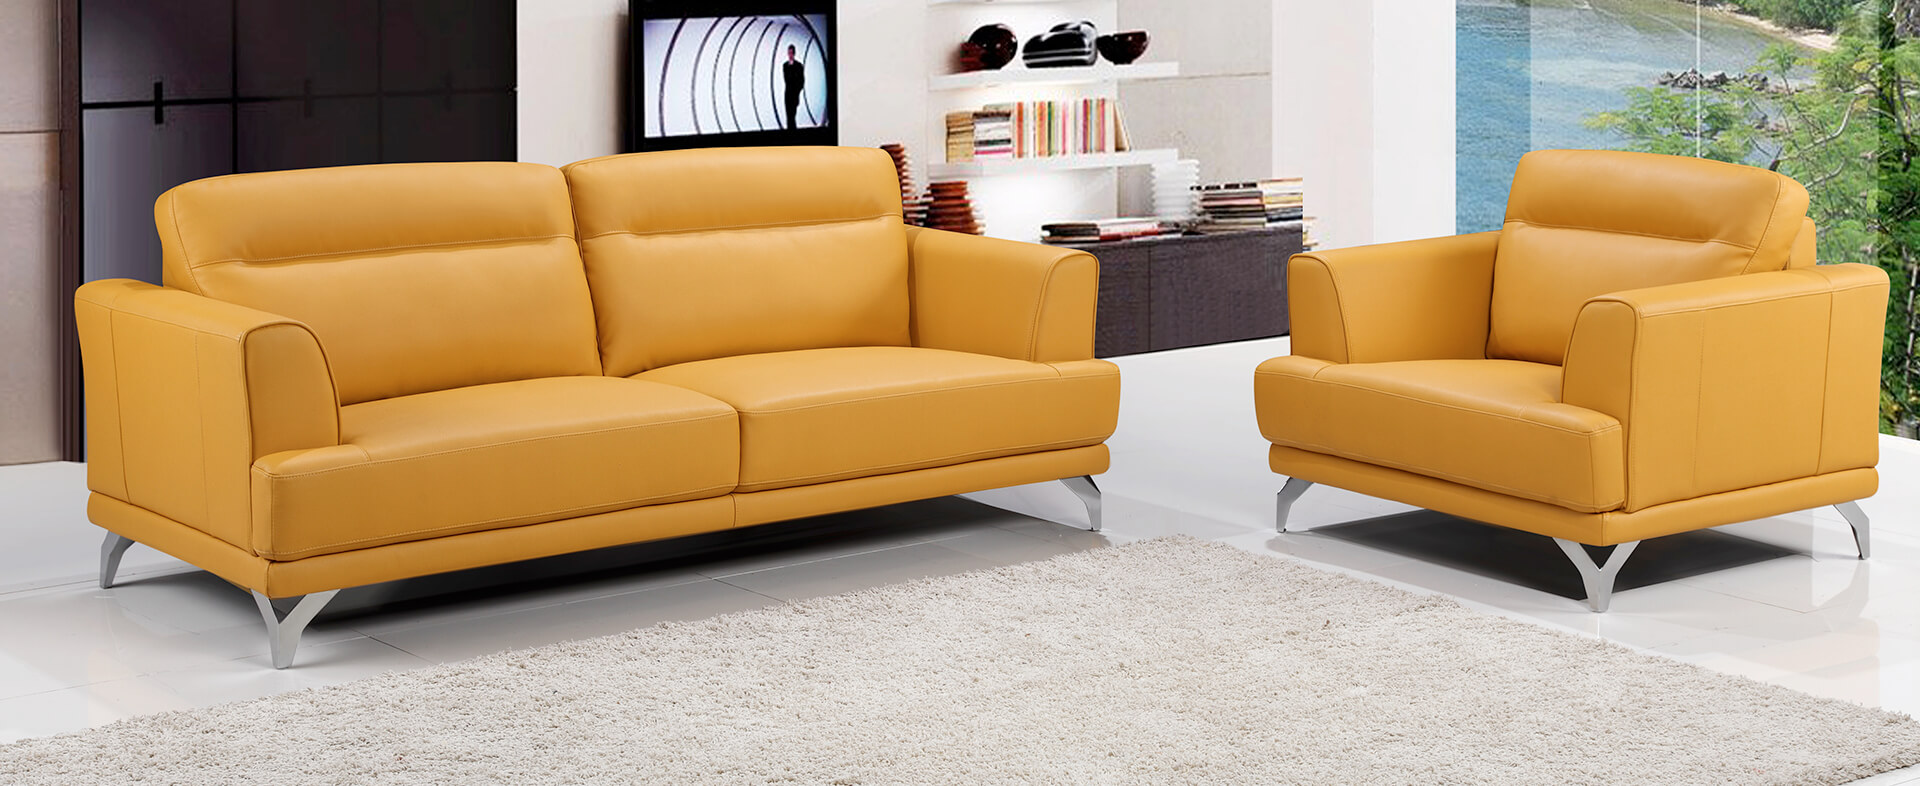 Living Solutions For Comfort And Lifestyle